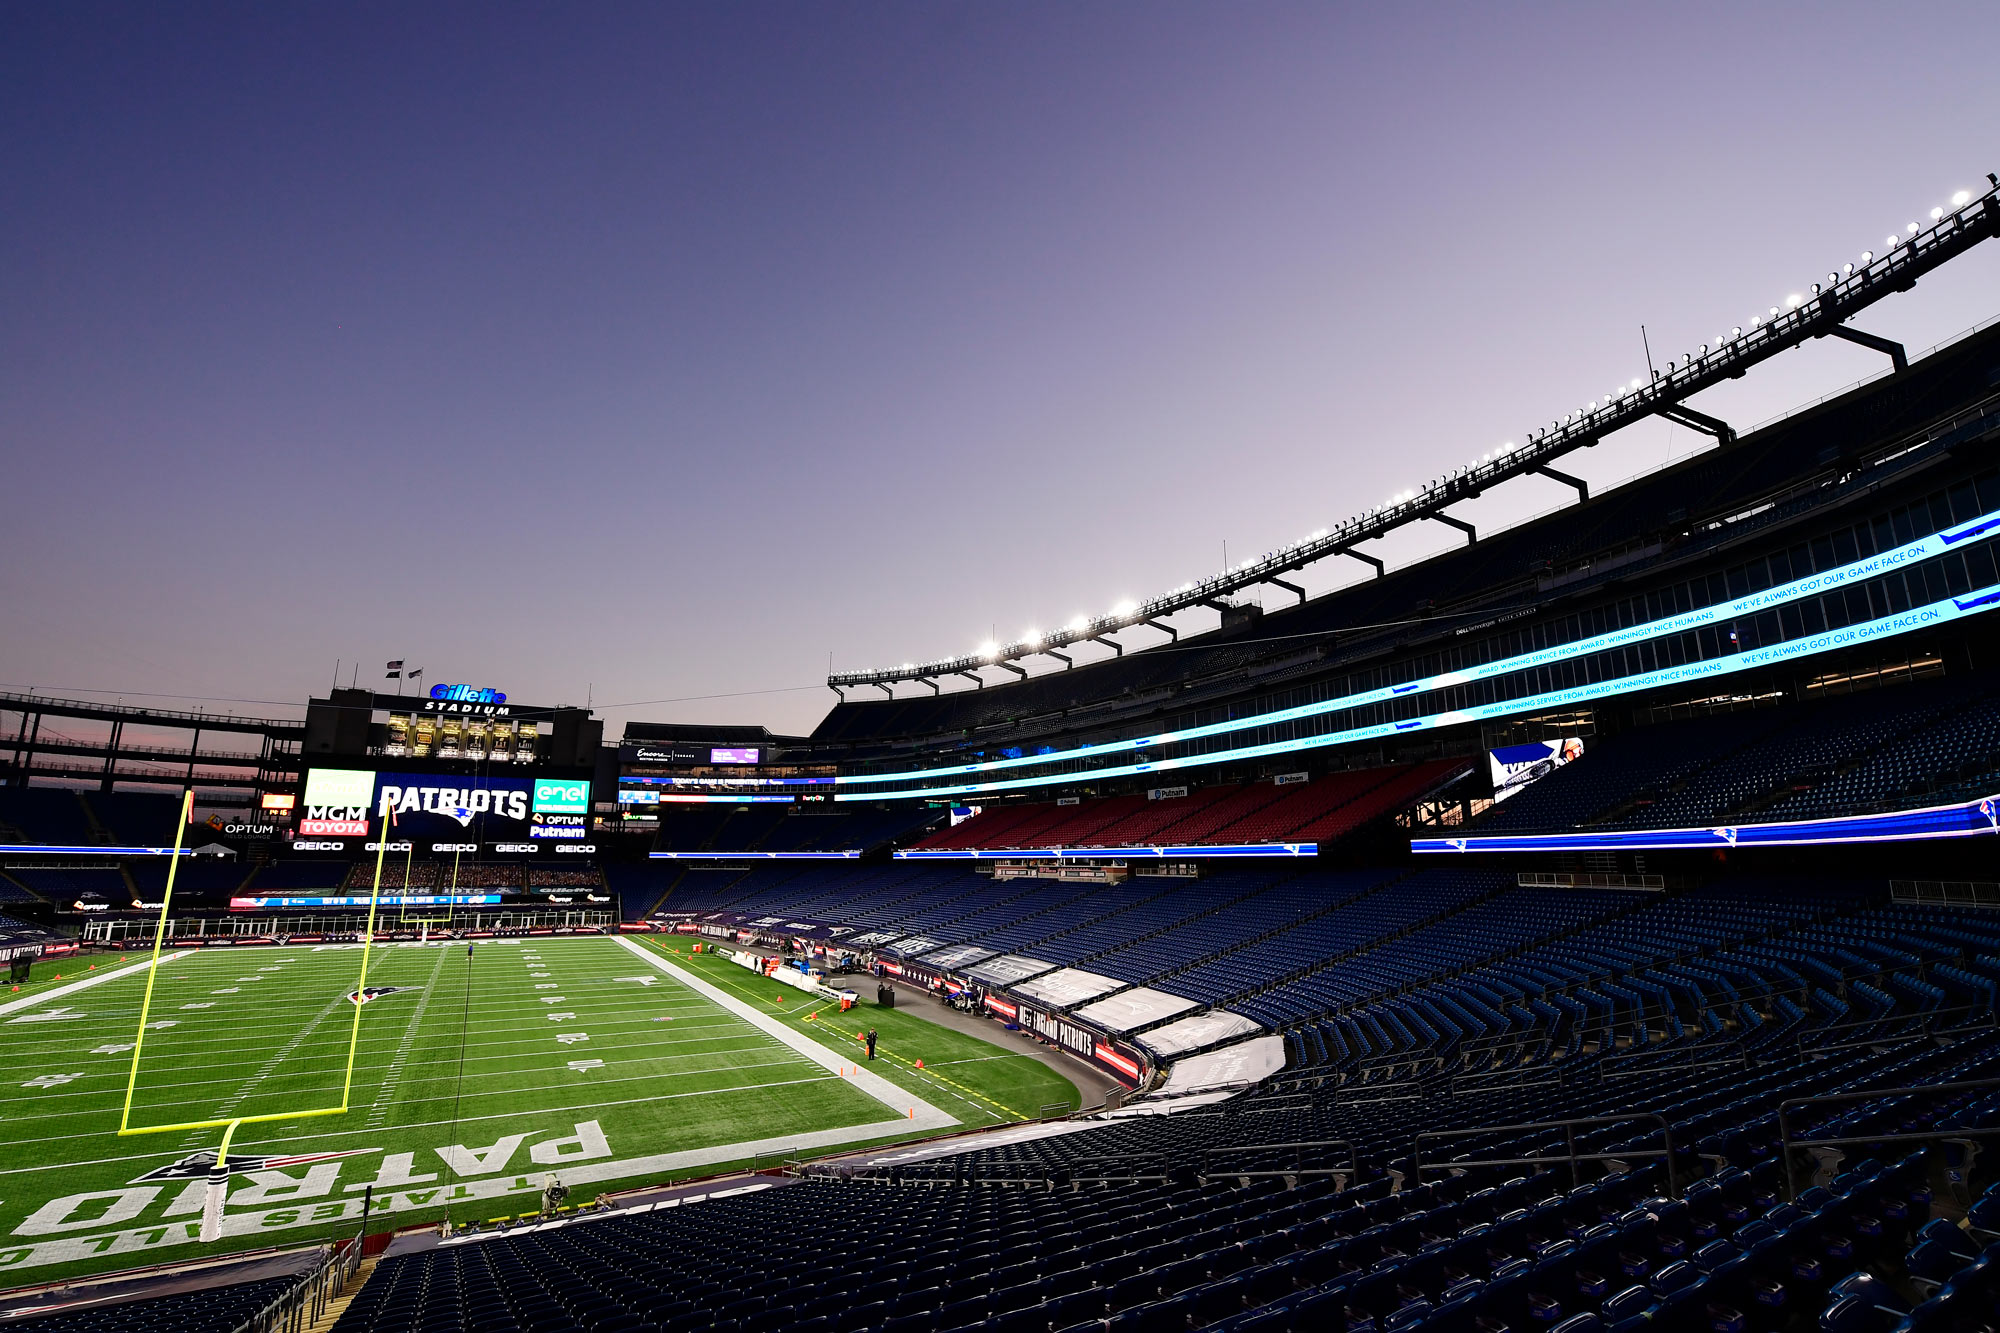 A general view of Gillette Stadium is seen on December 28, 2020, in Foxborough, Massachusetts.